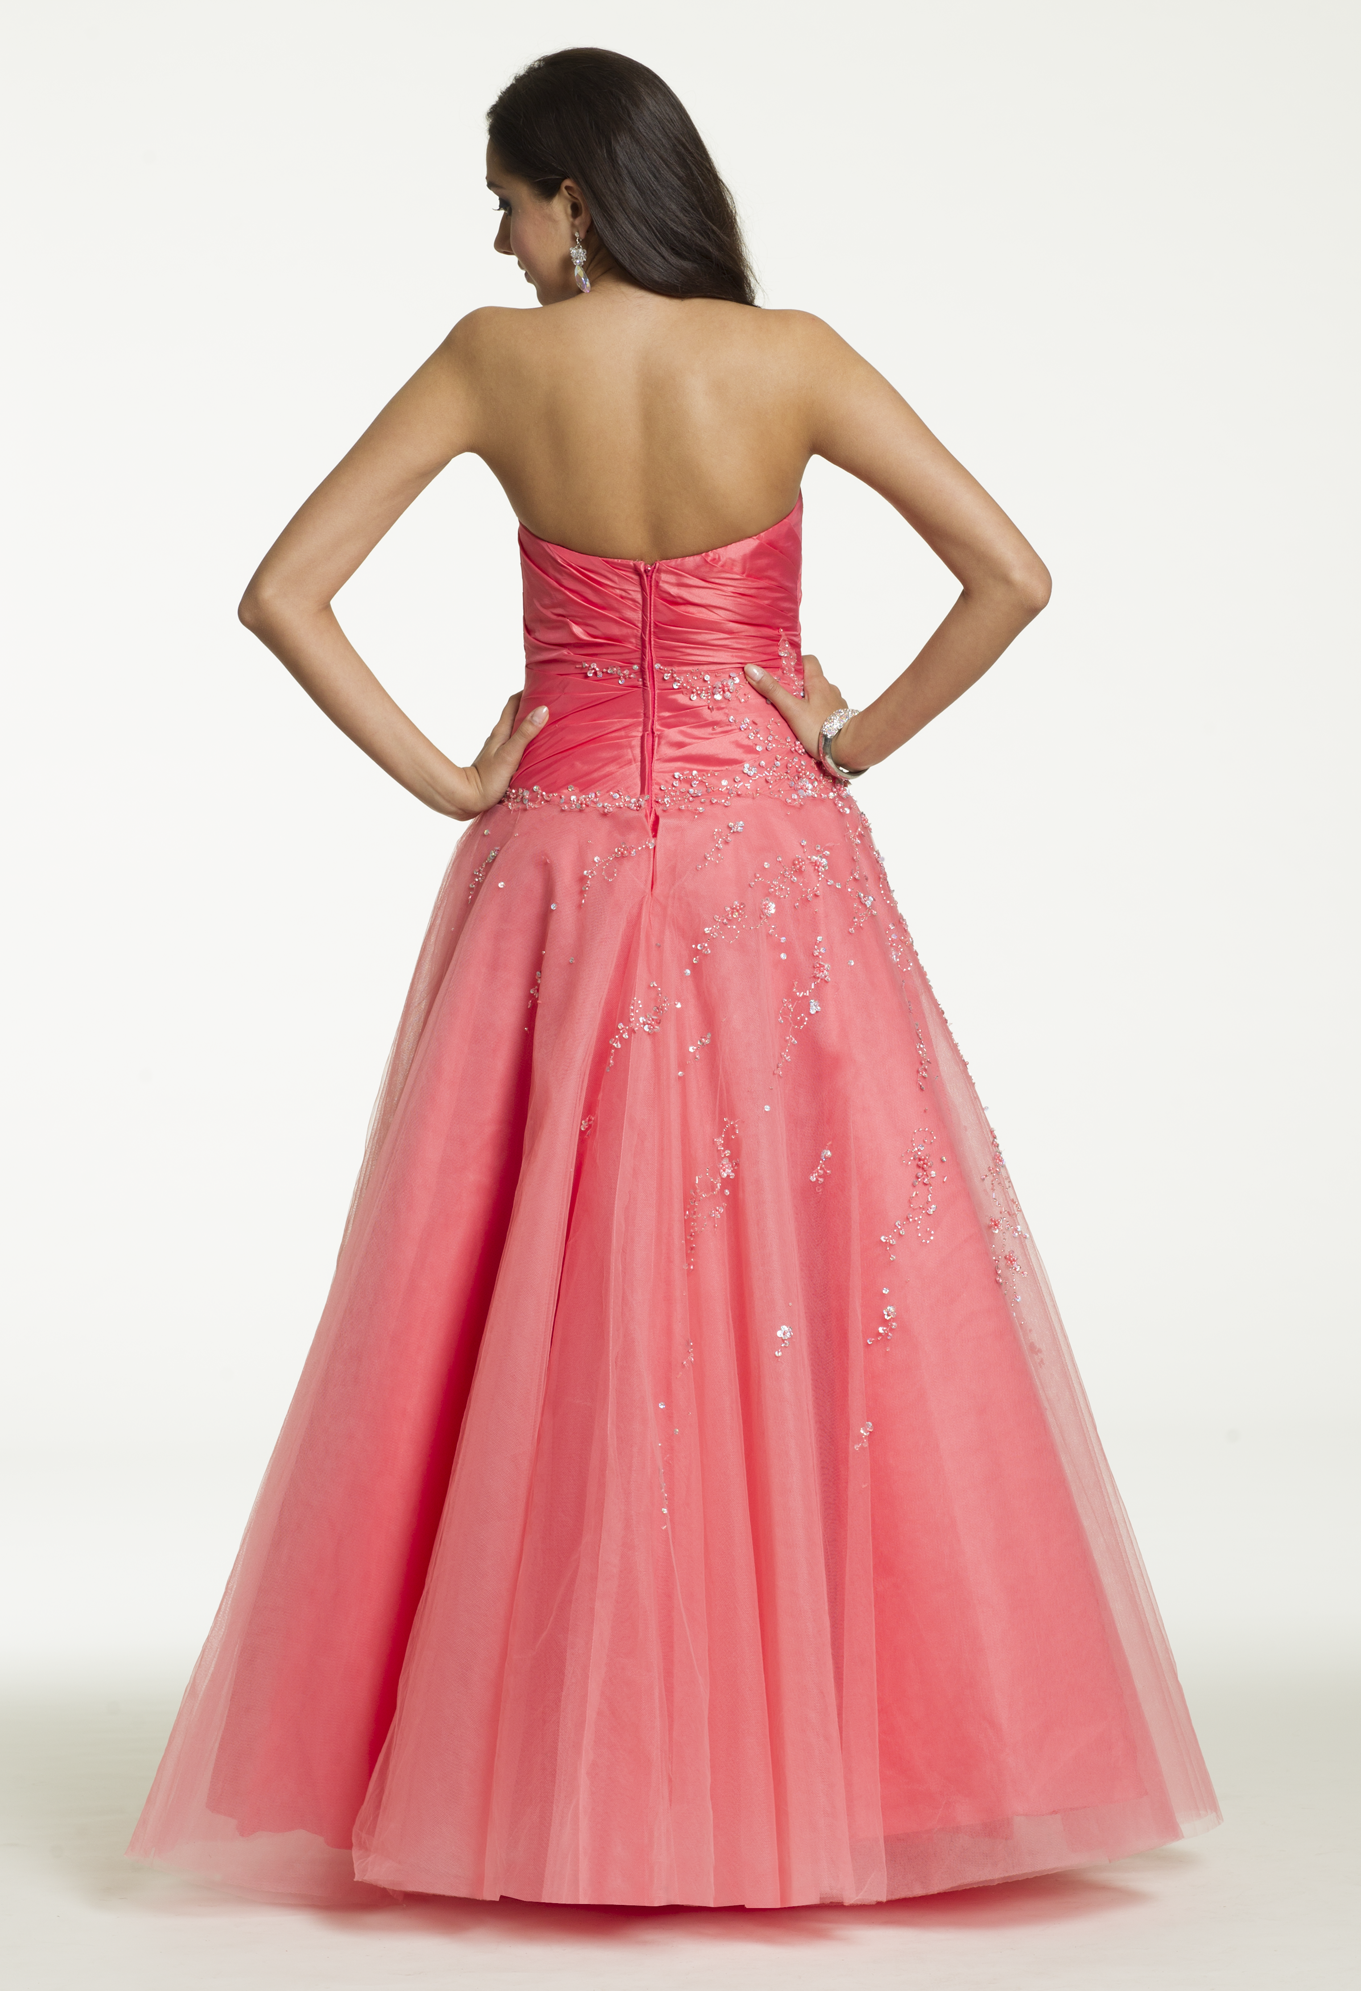 Long Taffeta Tulle Pink Ballgown Dress for prom, sweet sixteen party ...